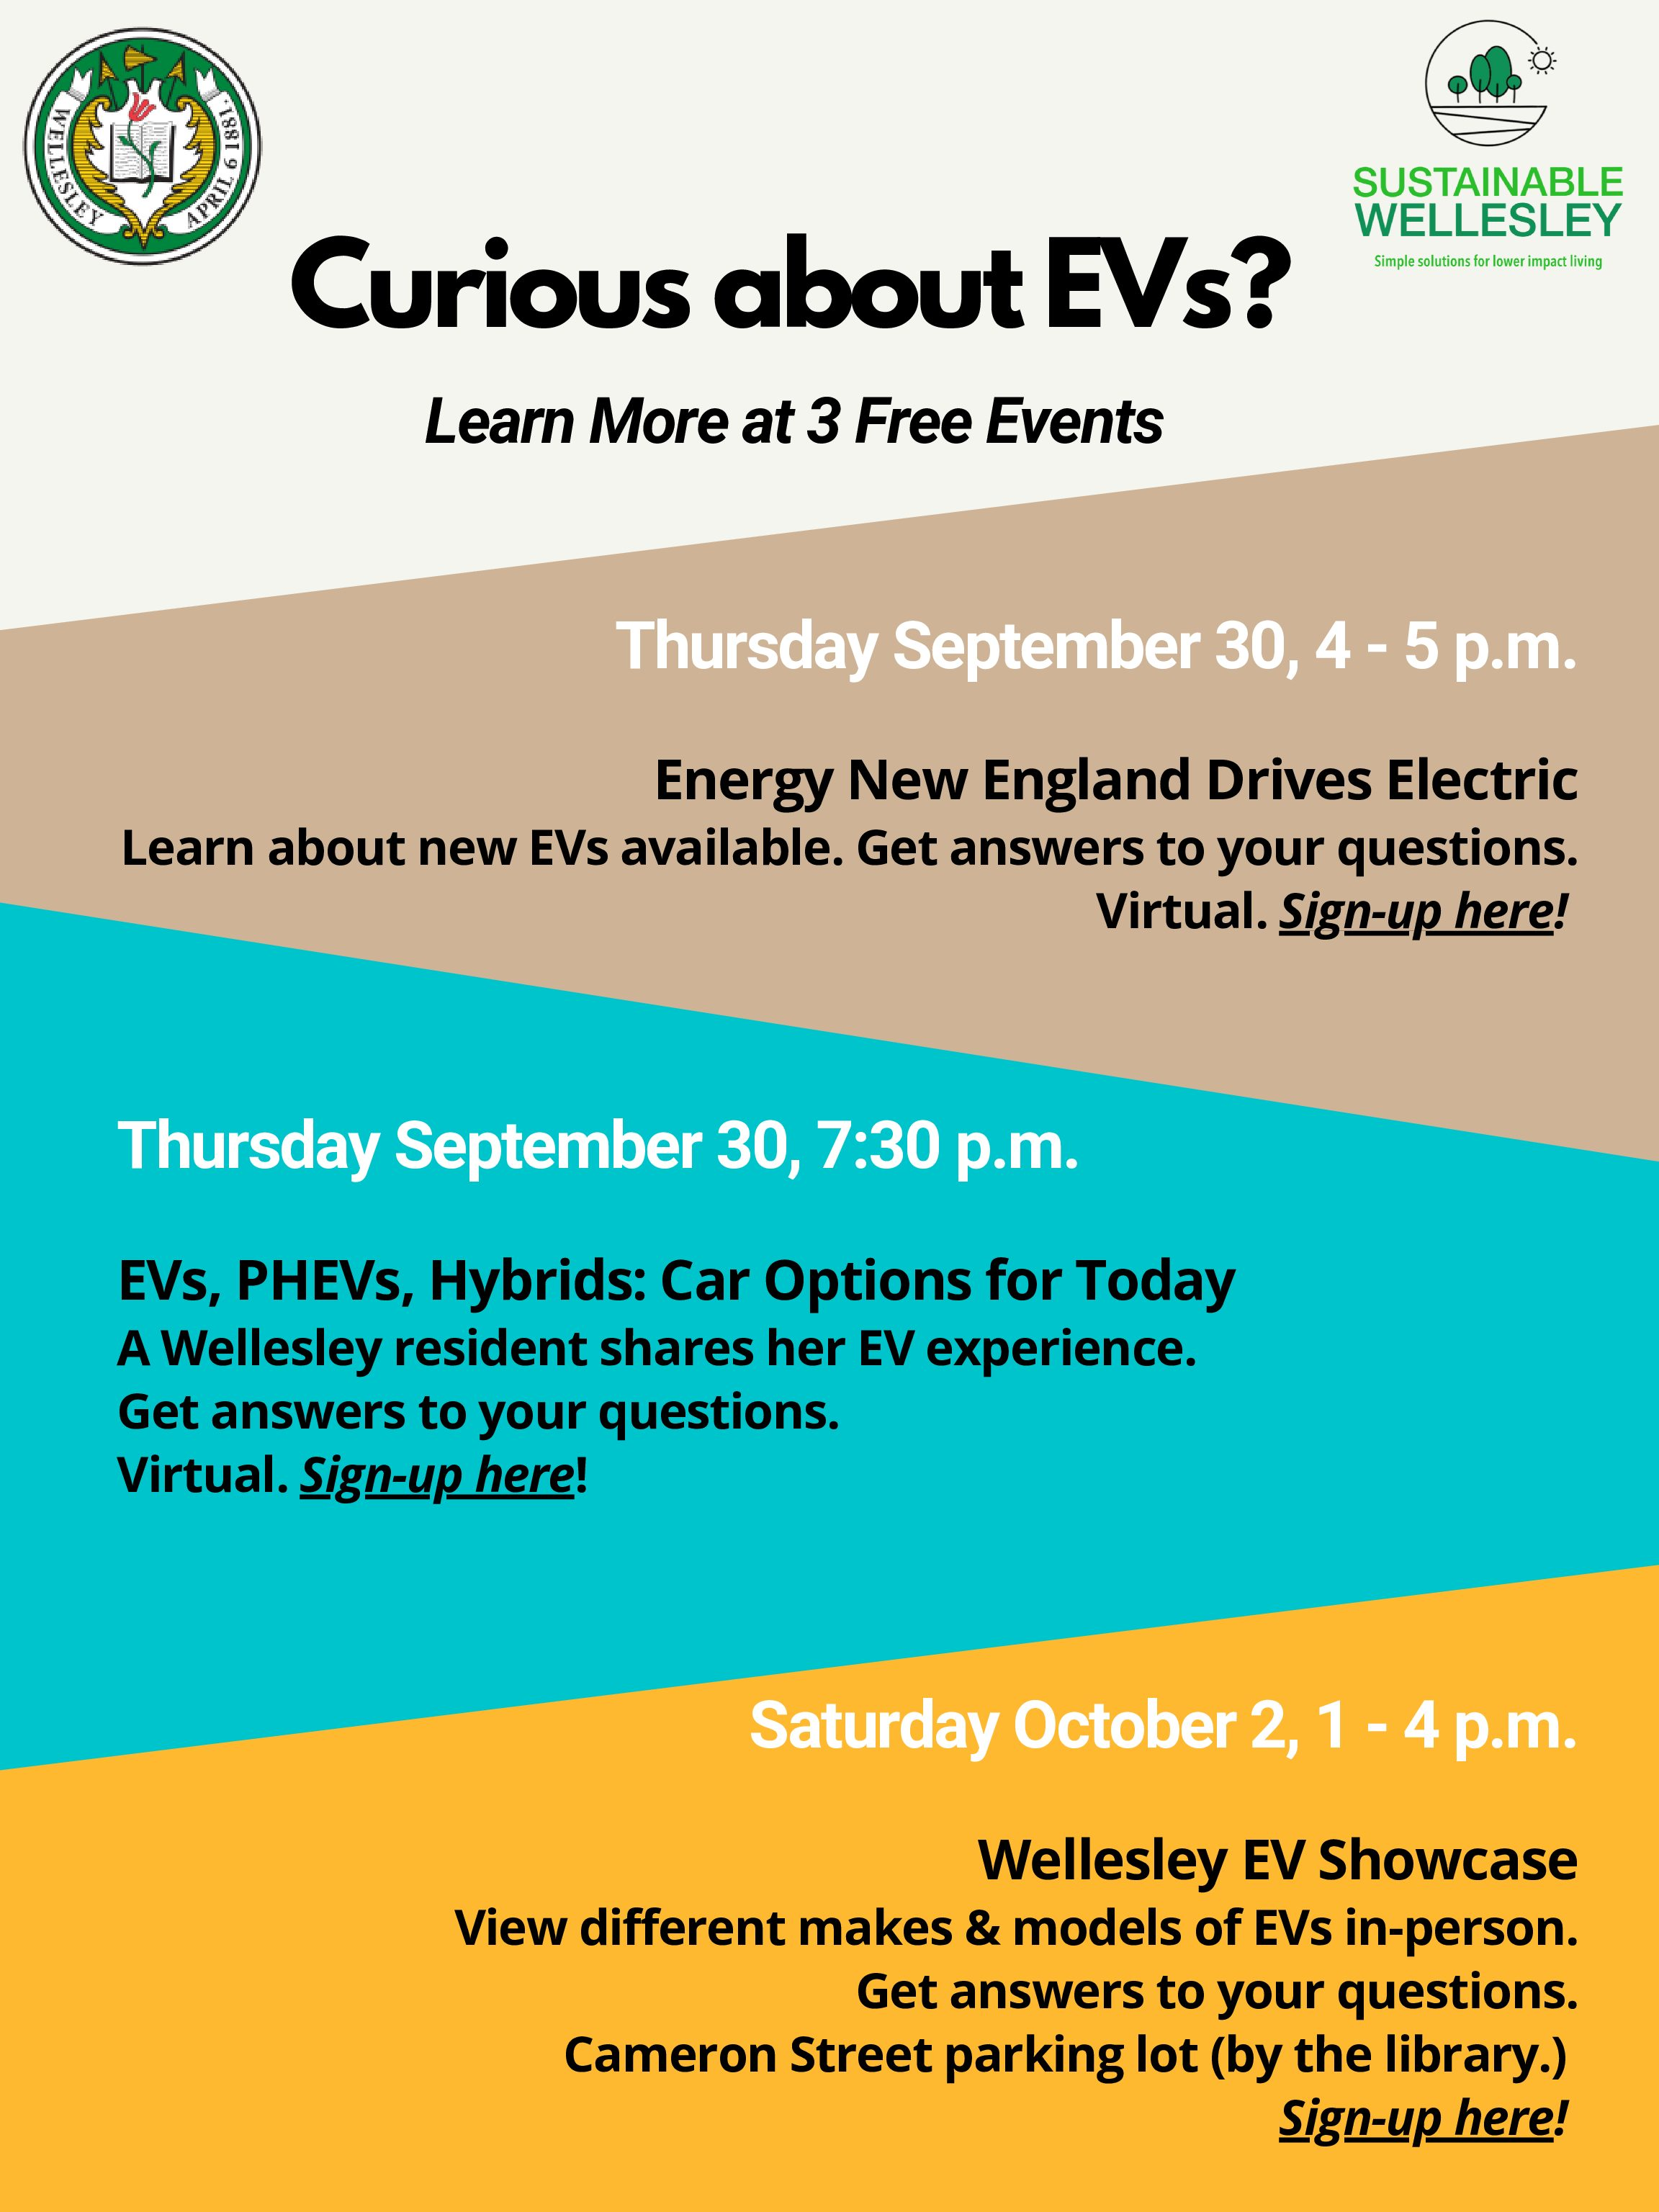 WMLP and Sustainable Wellesley to host:   Learn About Electric Vehicles (EV) Events